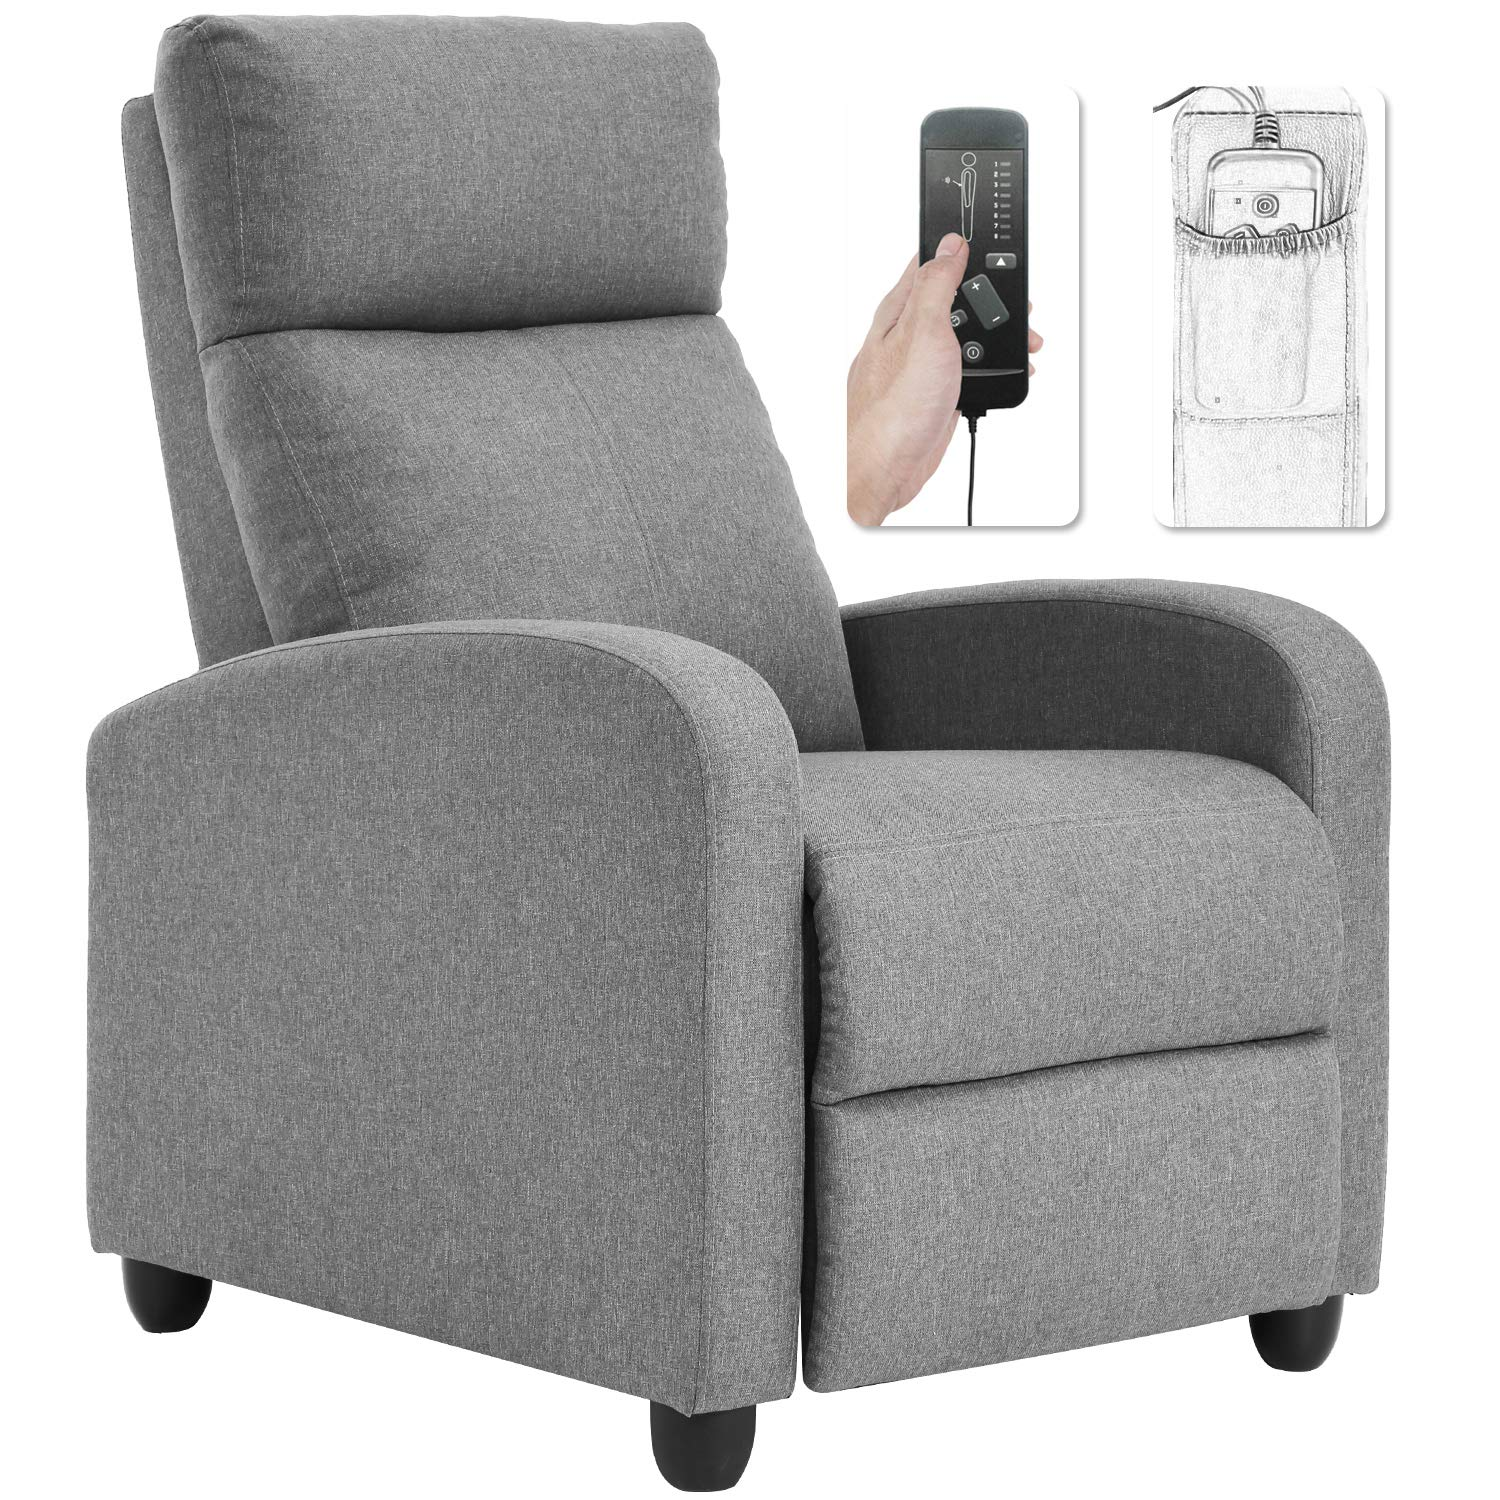 Recliner Chair For Living Room Winback Single Sofa Massage